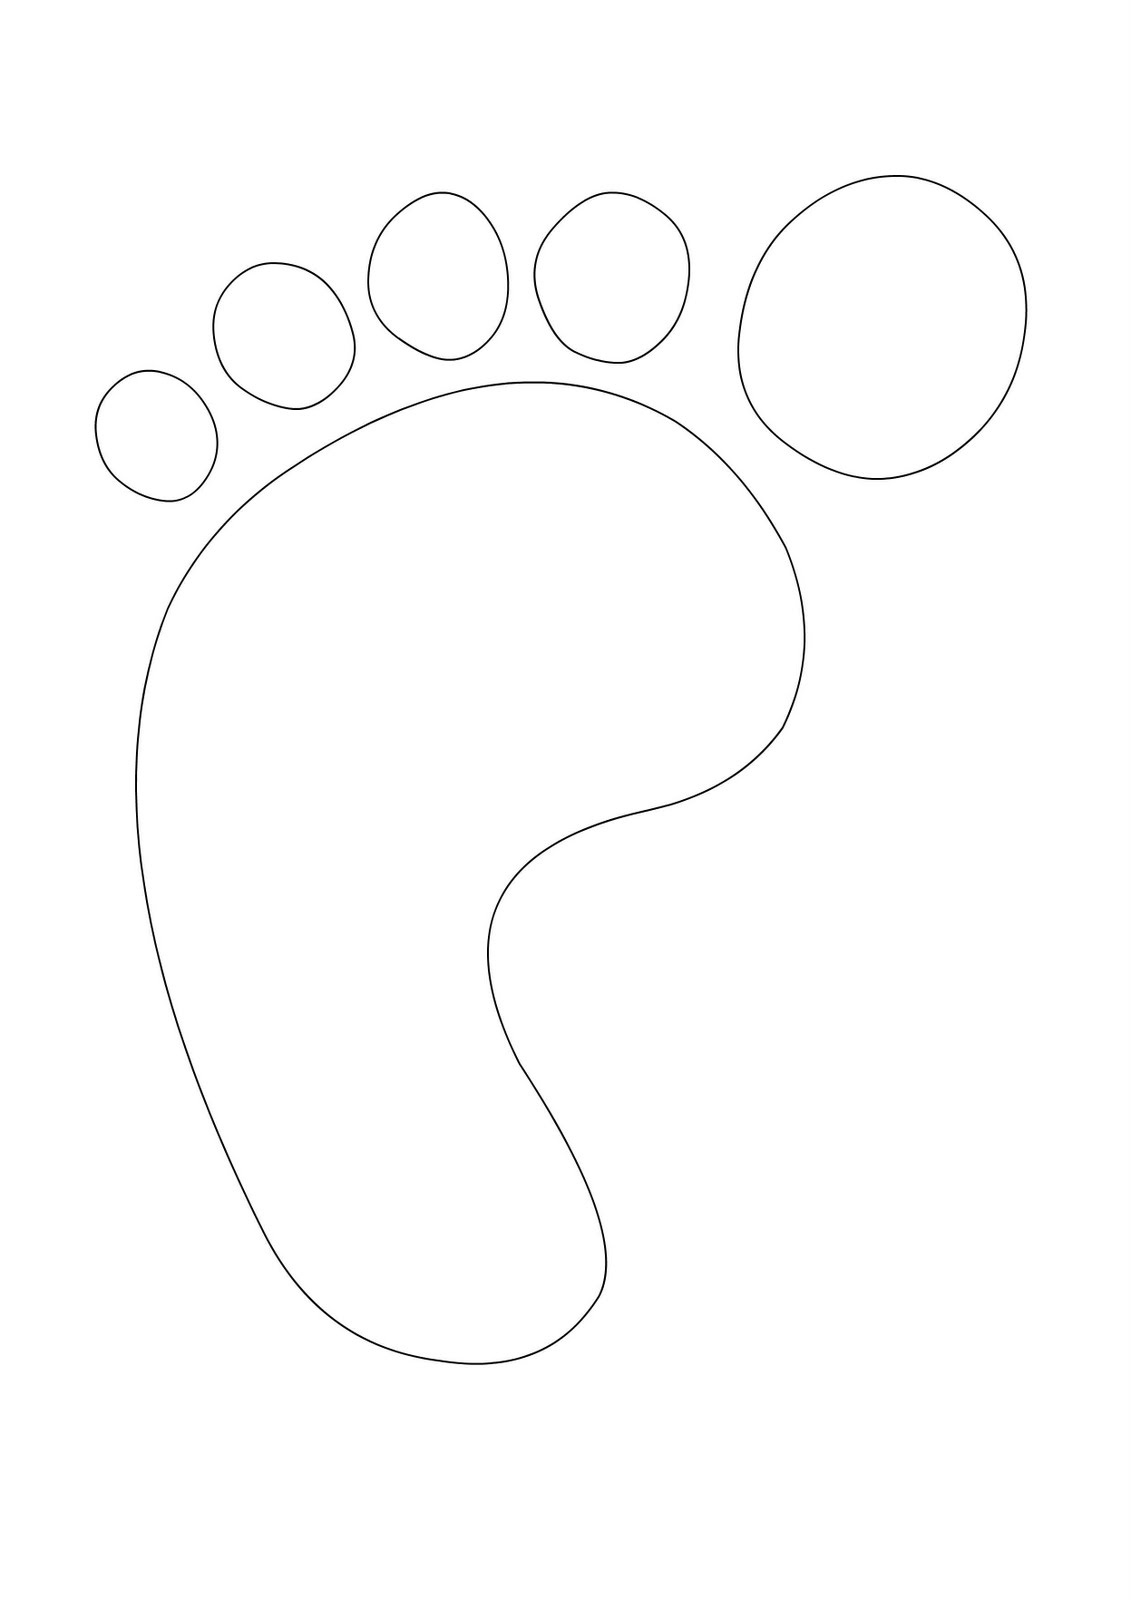 Free Footprint Template, Download Free Clip Art, Free Clip Art On - Free Printable Footprints